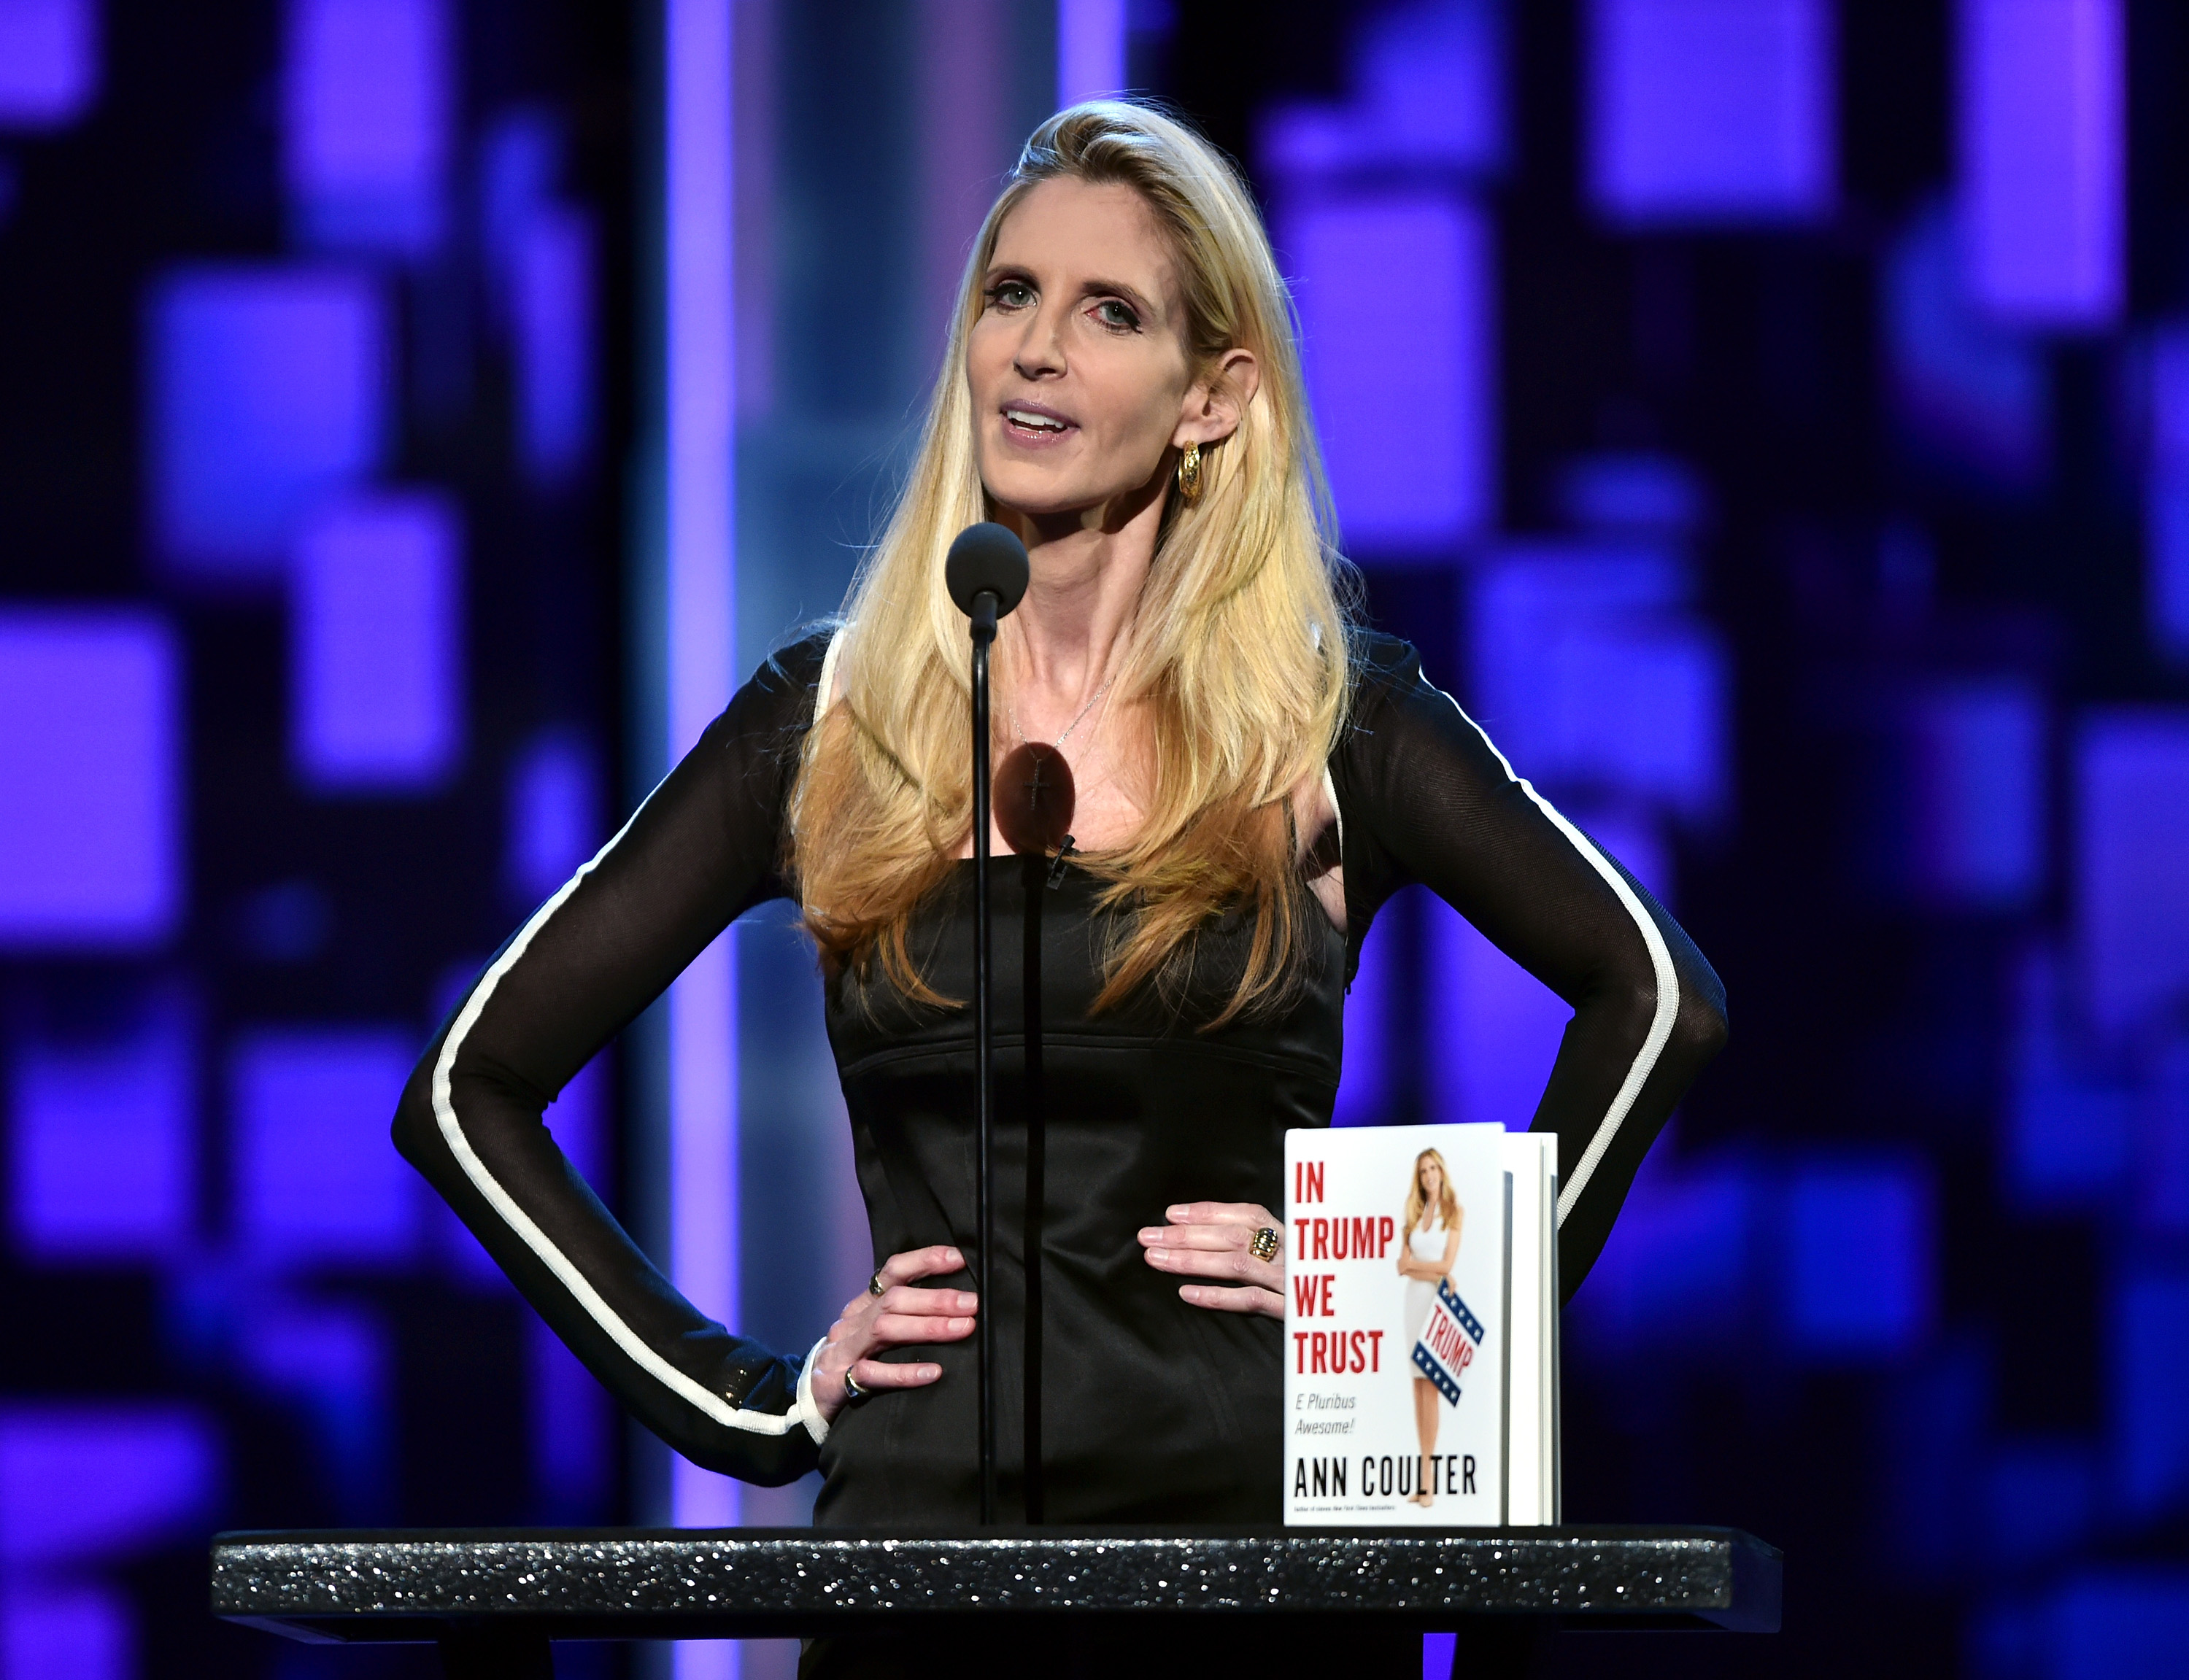 LOS ANGELES, CA - AUGUST 27: Political commentator/author Ann Coulter speaks onstage at The Comedy Central Roast of Rob Lowe at Sony Studios on August 27, 2016 in Los Angeles, California. Getty Images/ Alberto E. Rodriguez